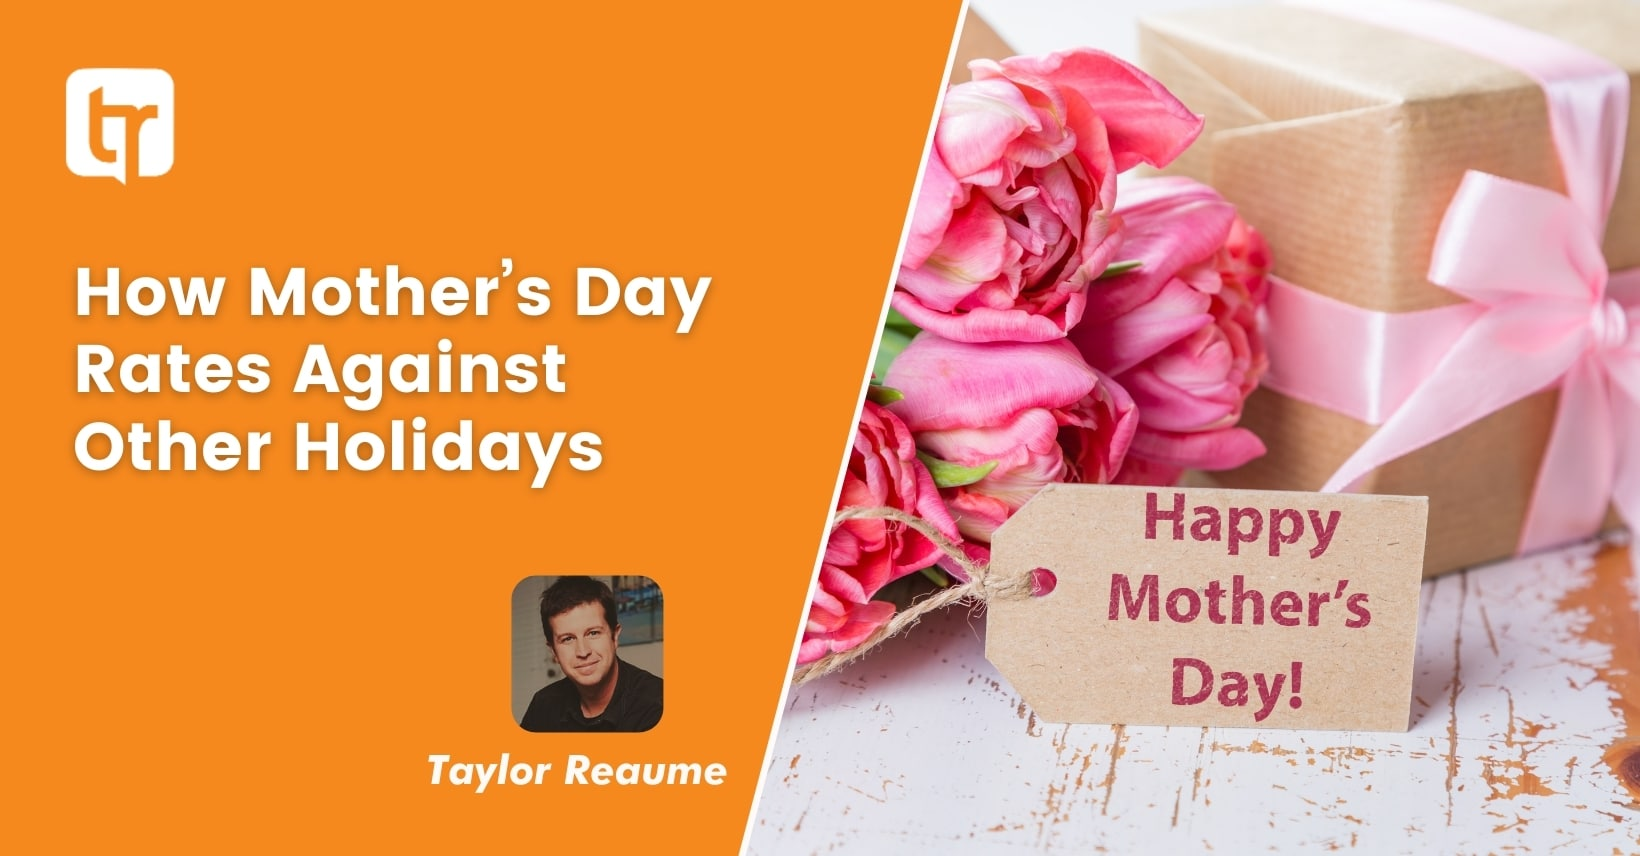 How Mother's Day Rates Against Other Holidays